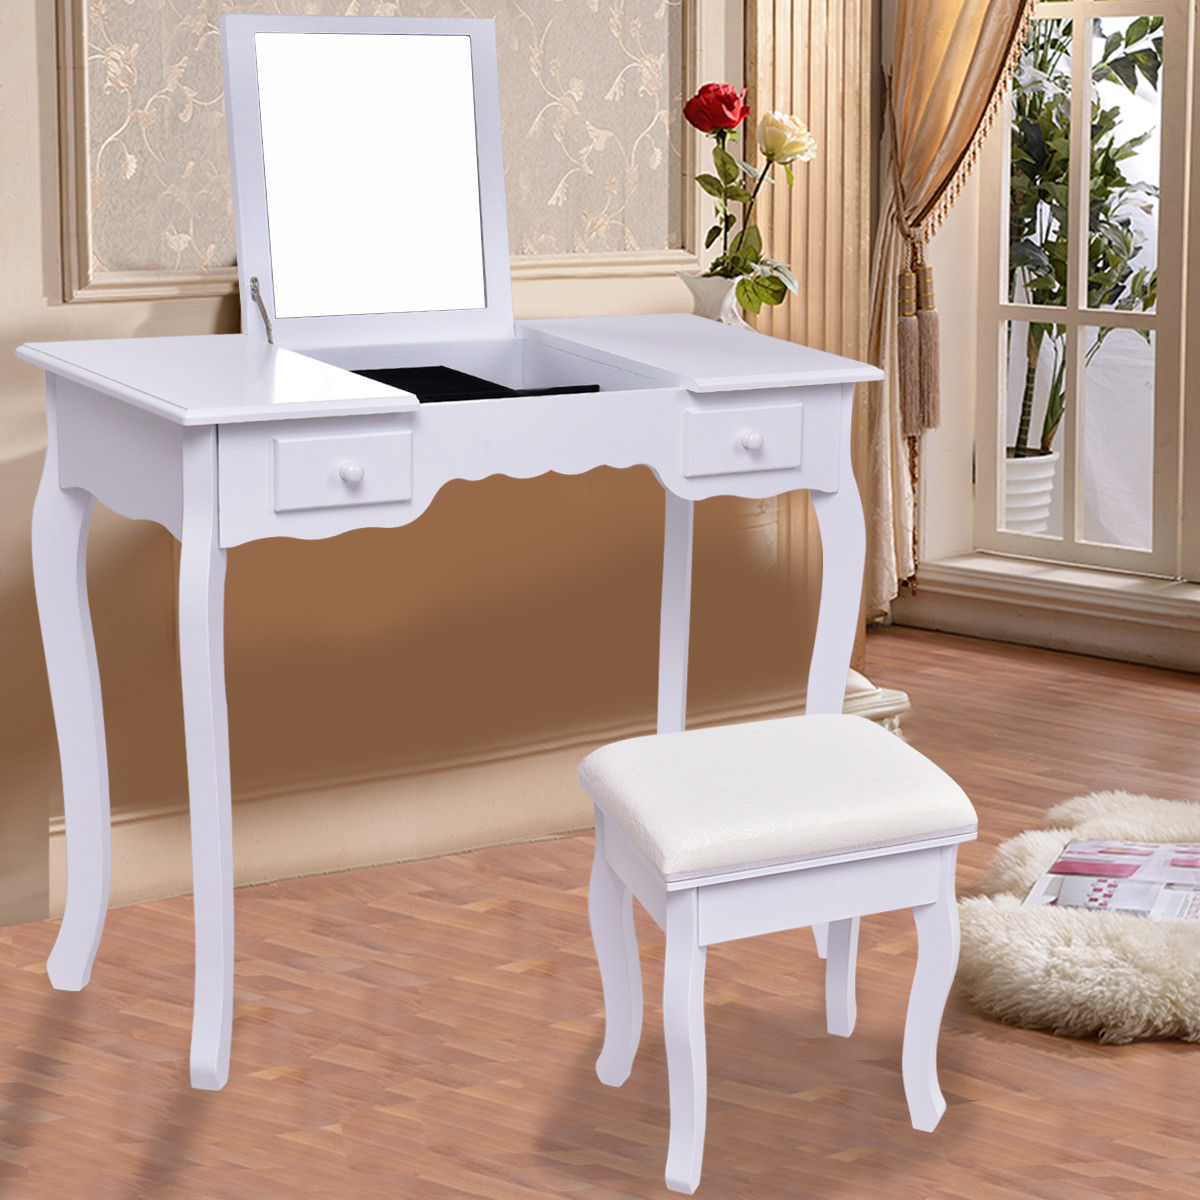 Giantex White Vanity Dressing Table Set Mirrored Bathroom Furniture With Stool Table Modern Make Up Dressers Desk HW56231WH декор lord vanity quinta mirabilia grigio 20x56